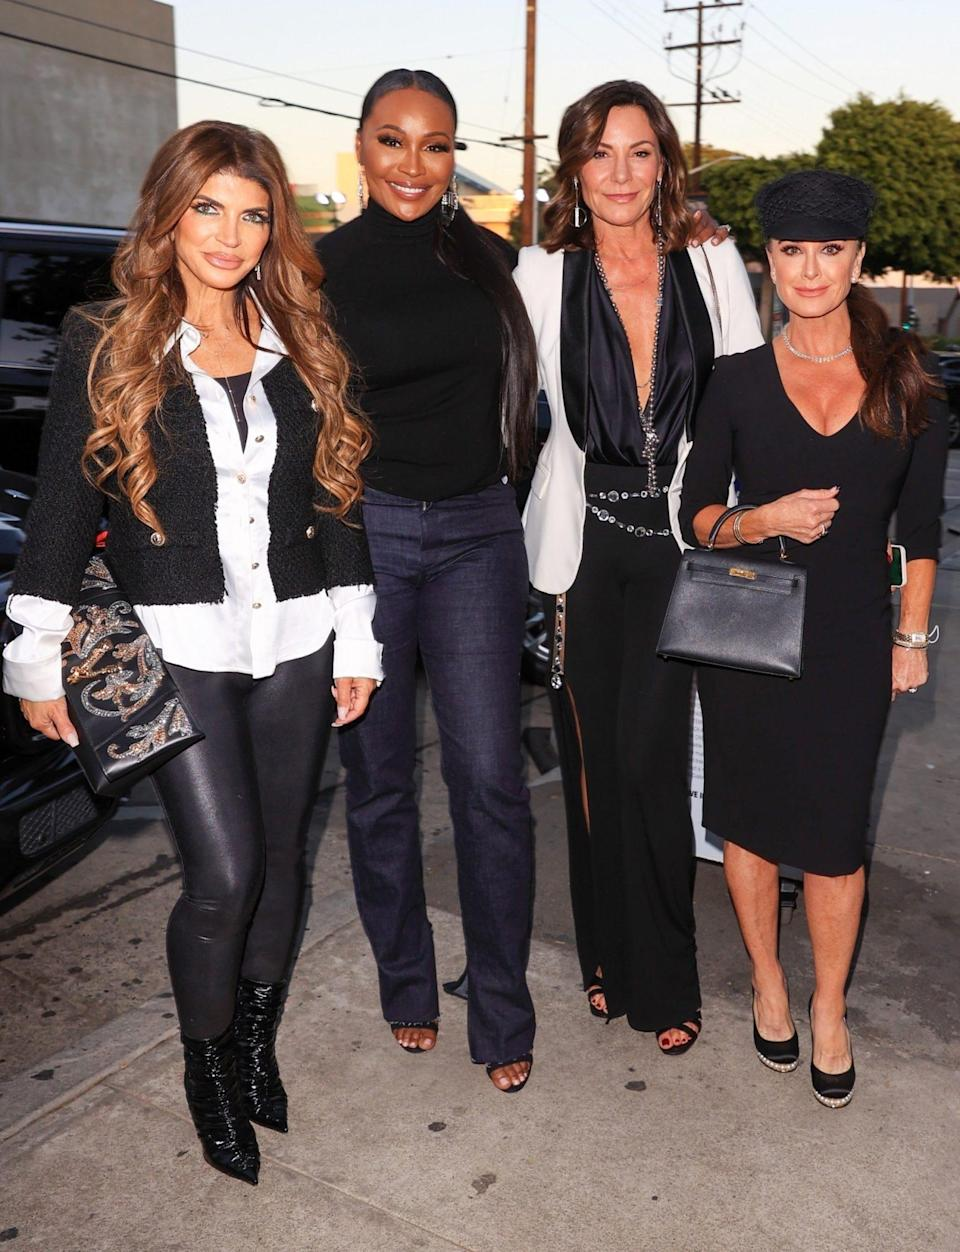 <p>Jersey's Teresa Giudice, Atlanta's Cynthia Bailey, New York's Luann de Lesseps and Beverly Hills' Kyle Richards get dinner at Craig's in West Hollywood on Oct. 13.</p>